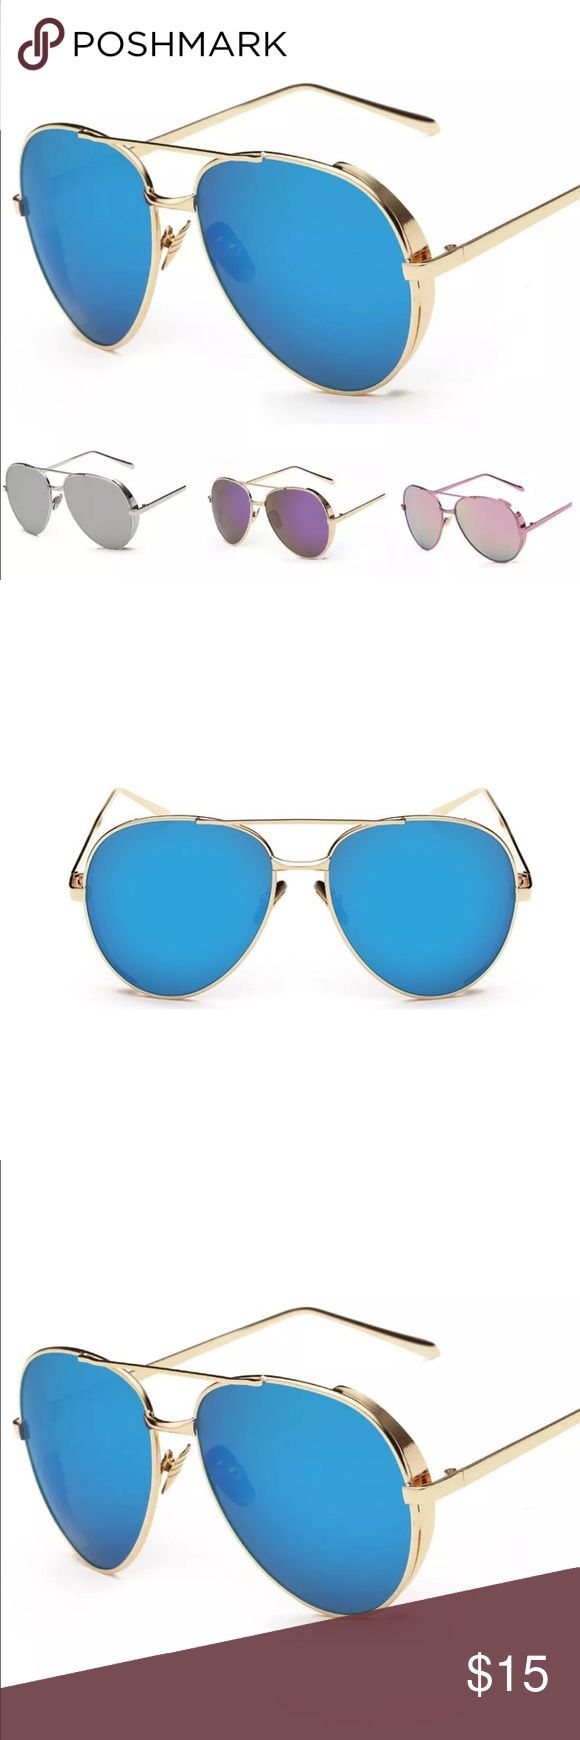 best 25+ oversized aviator sunglasses ideas on pinterest | ray ban